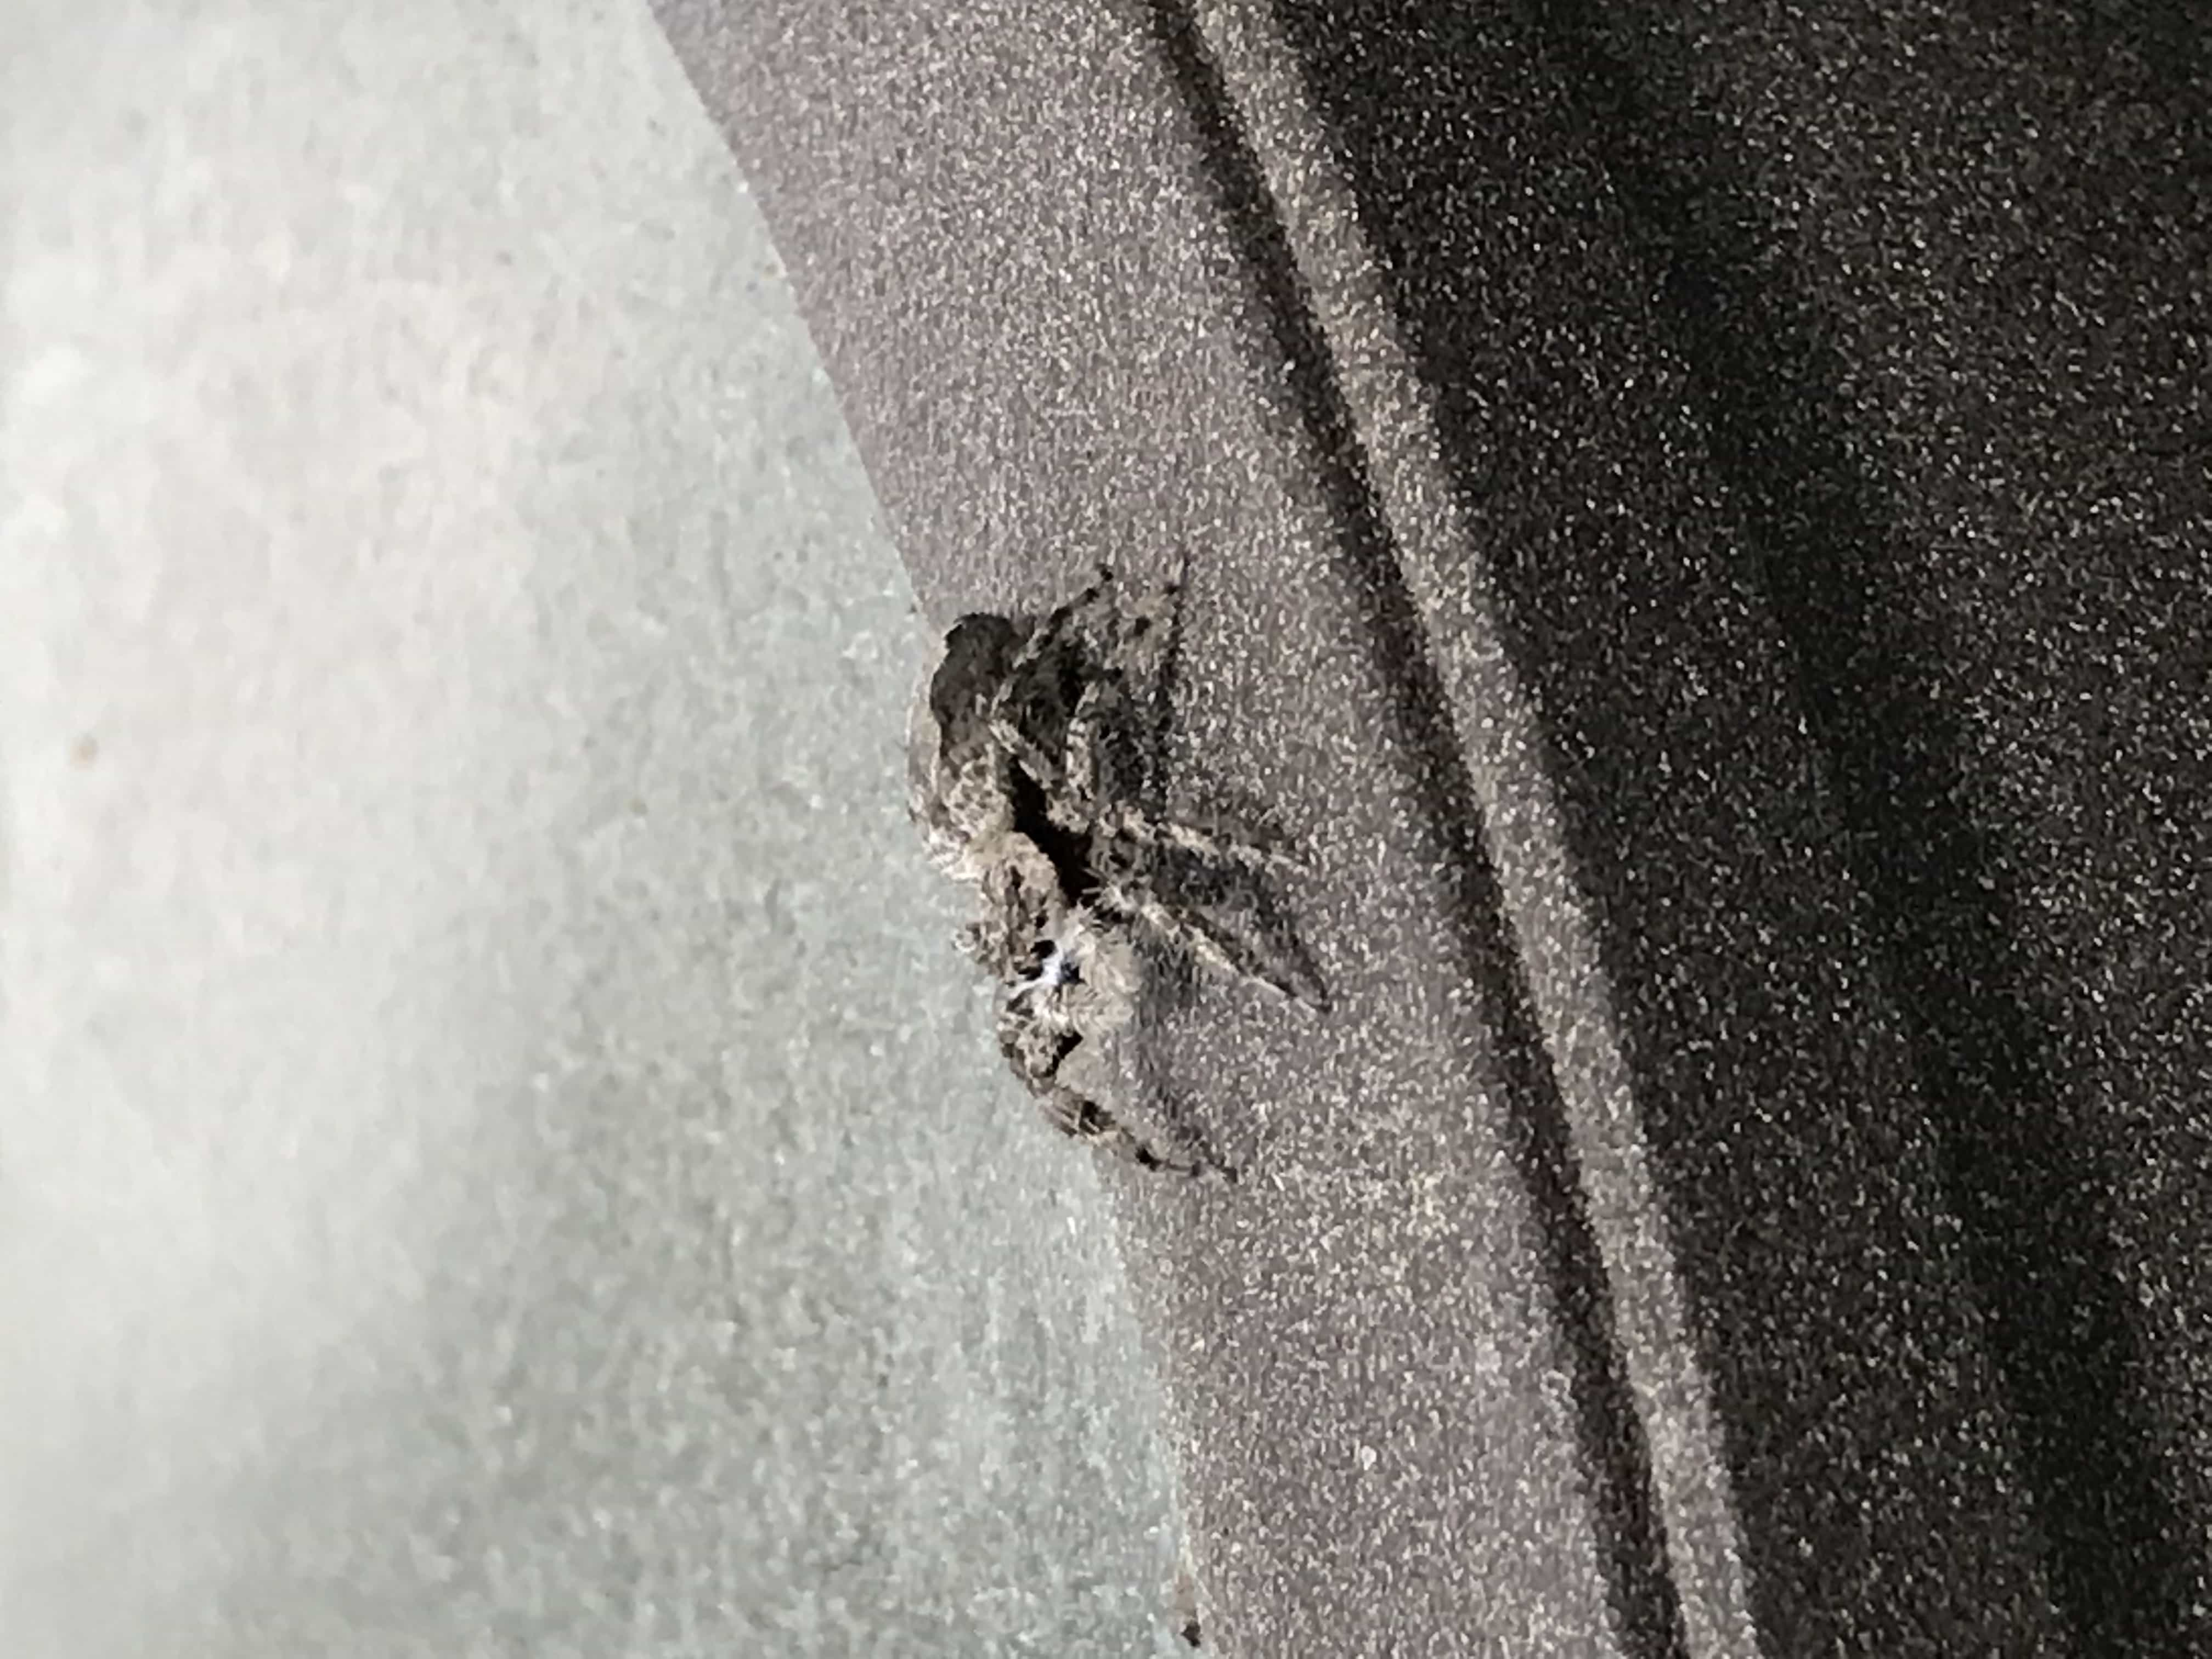 Picture of Platycryptus undatus (Tan Jumping Spider) - Lateral